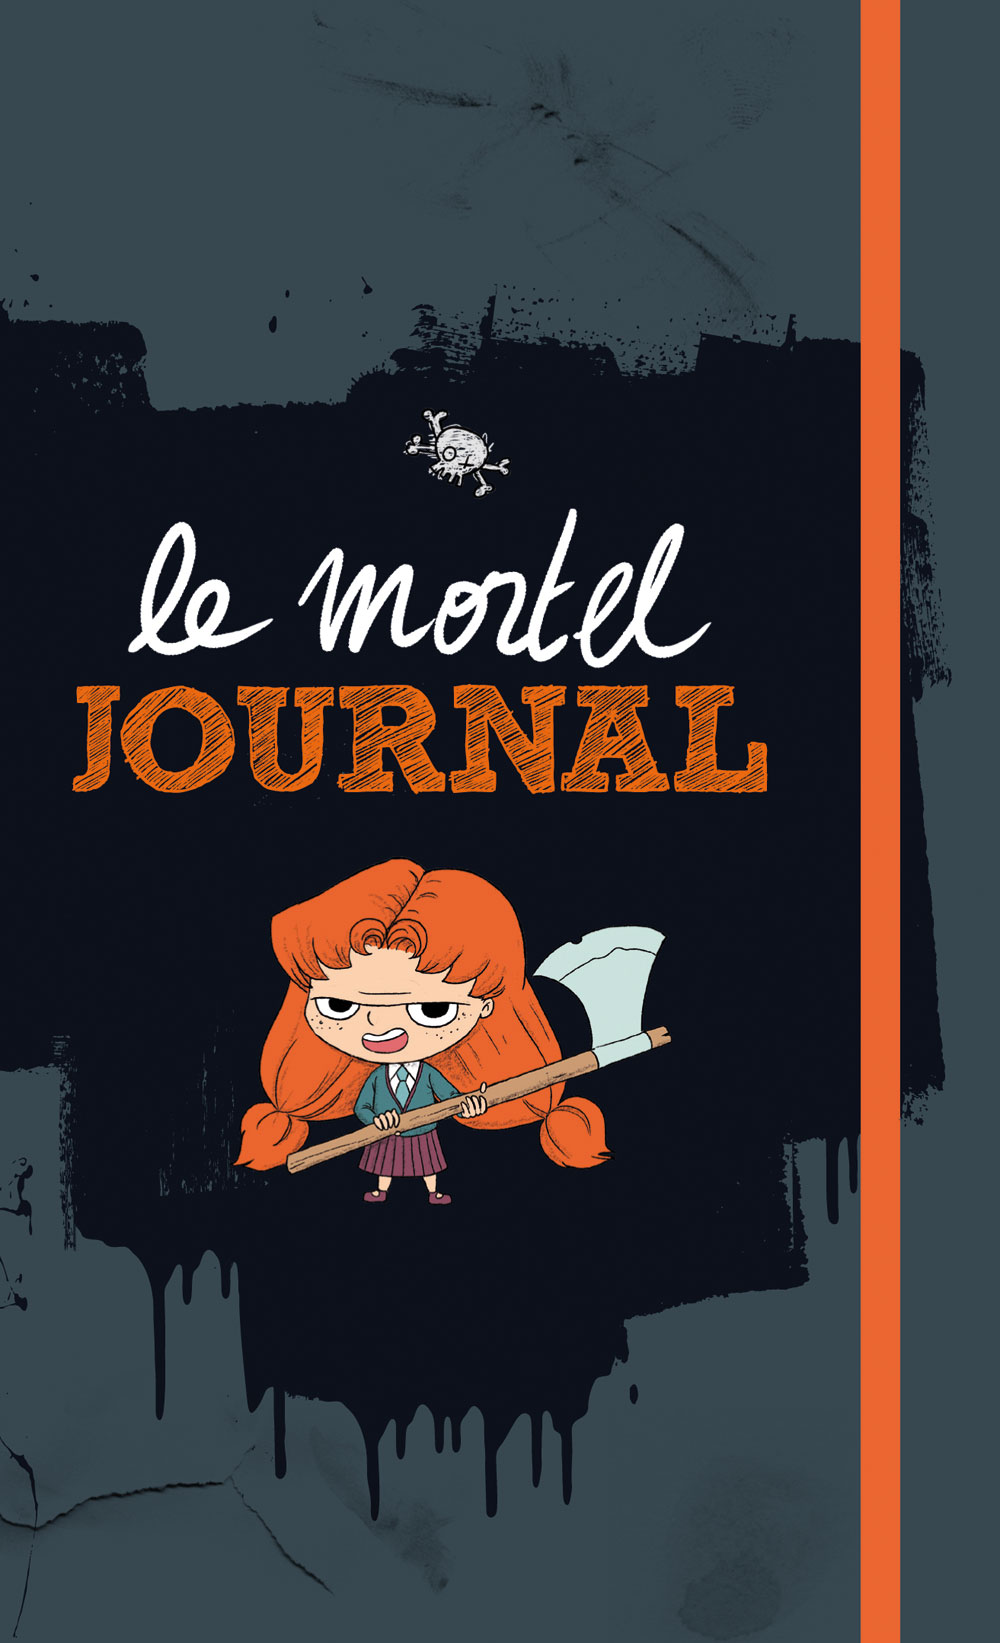 Mortel_Journal